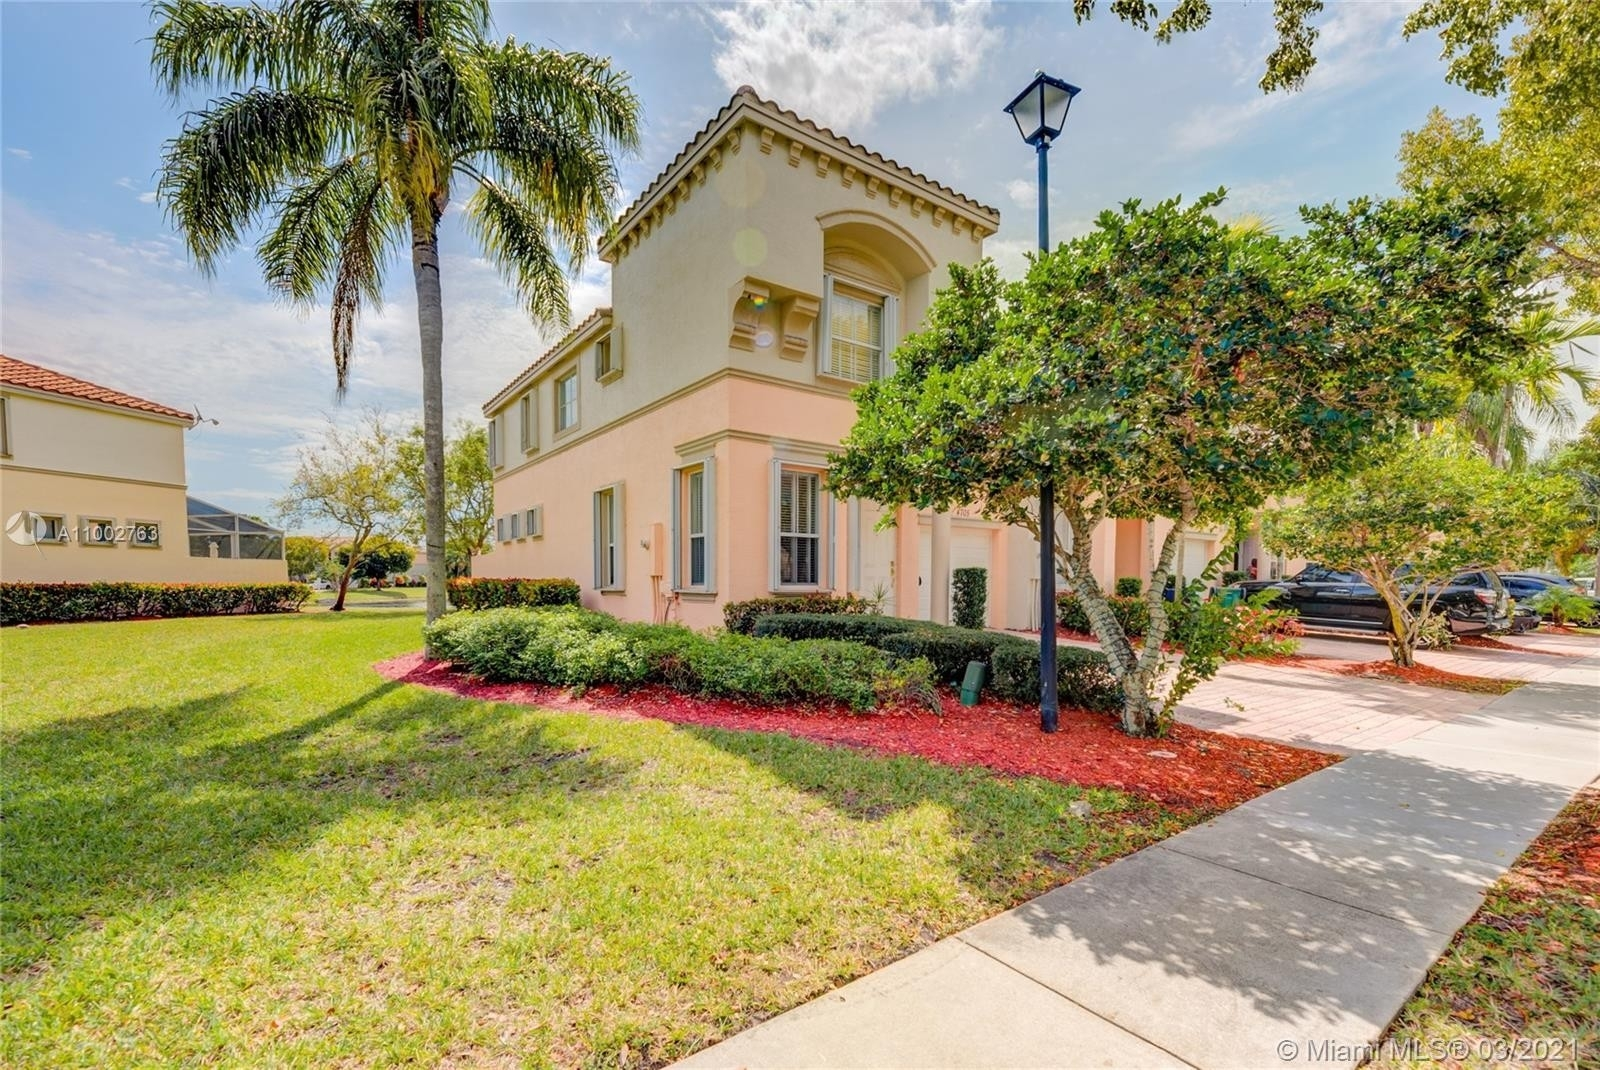 Single Family Home for Sale at Country Lakes, Miramar, FL 33027